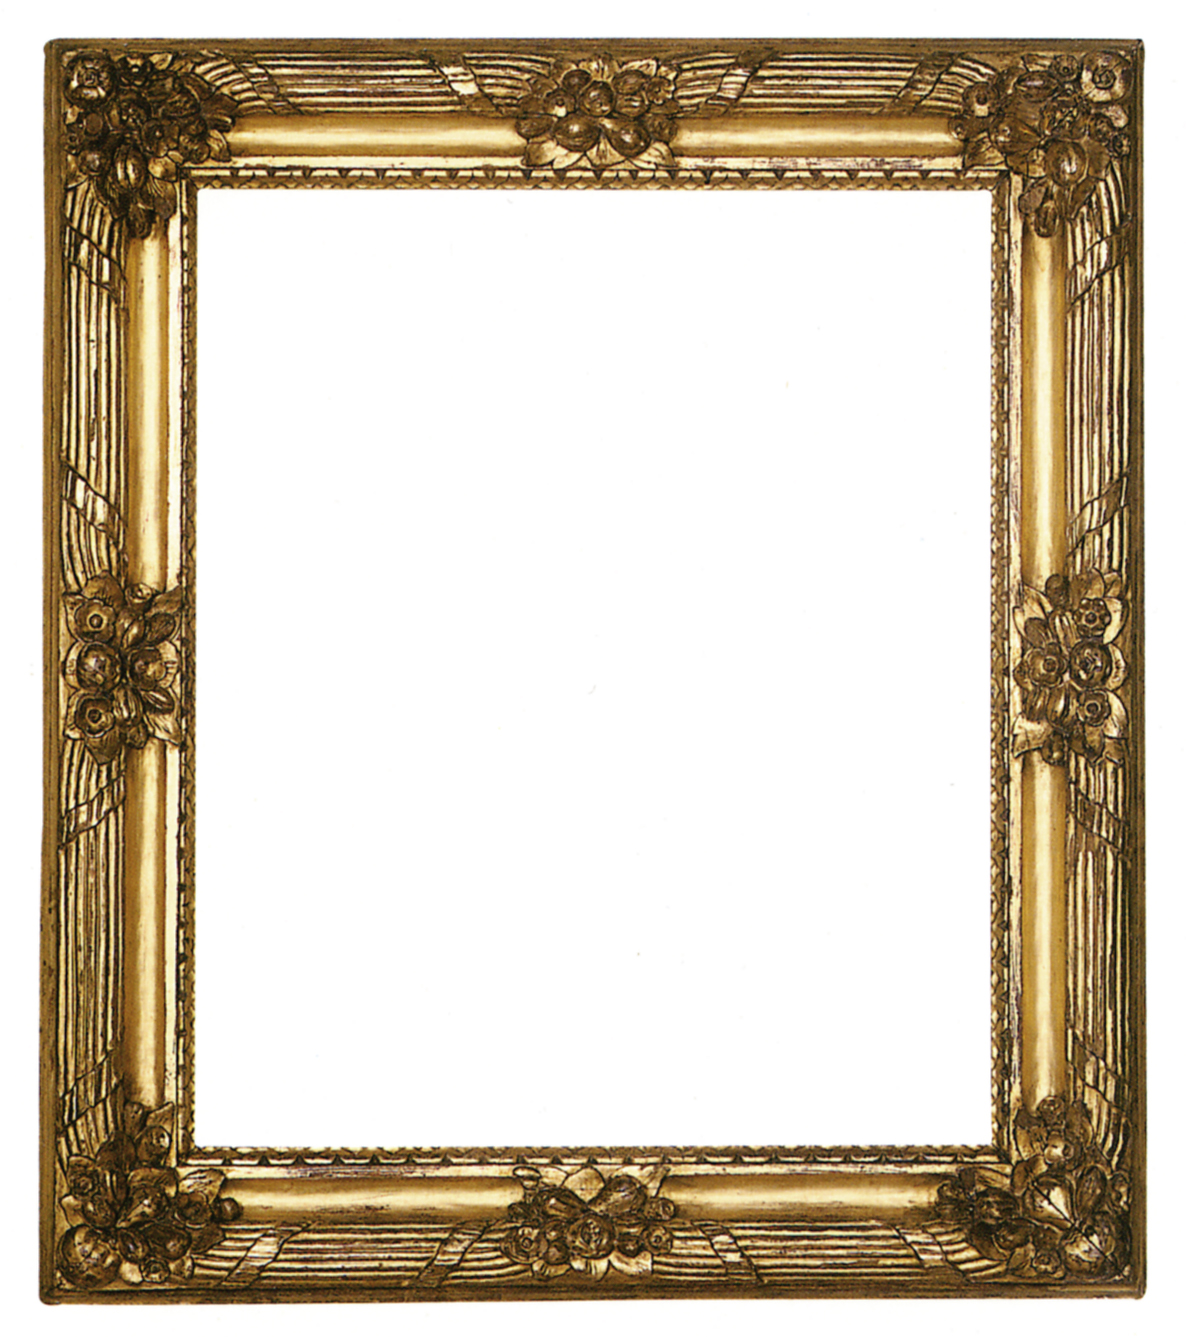 Featured Frame of the Week